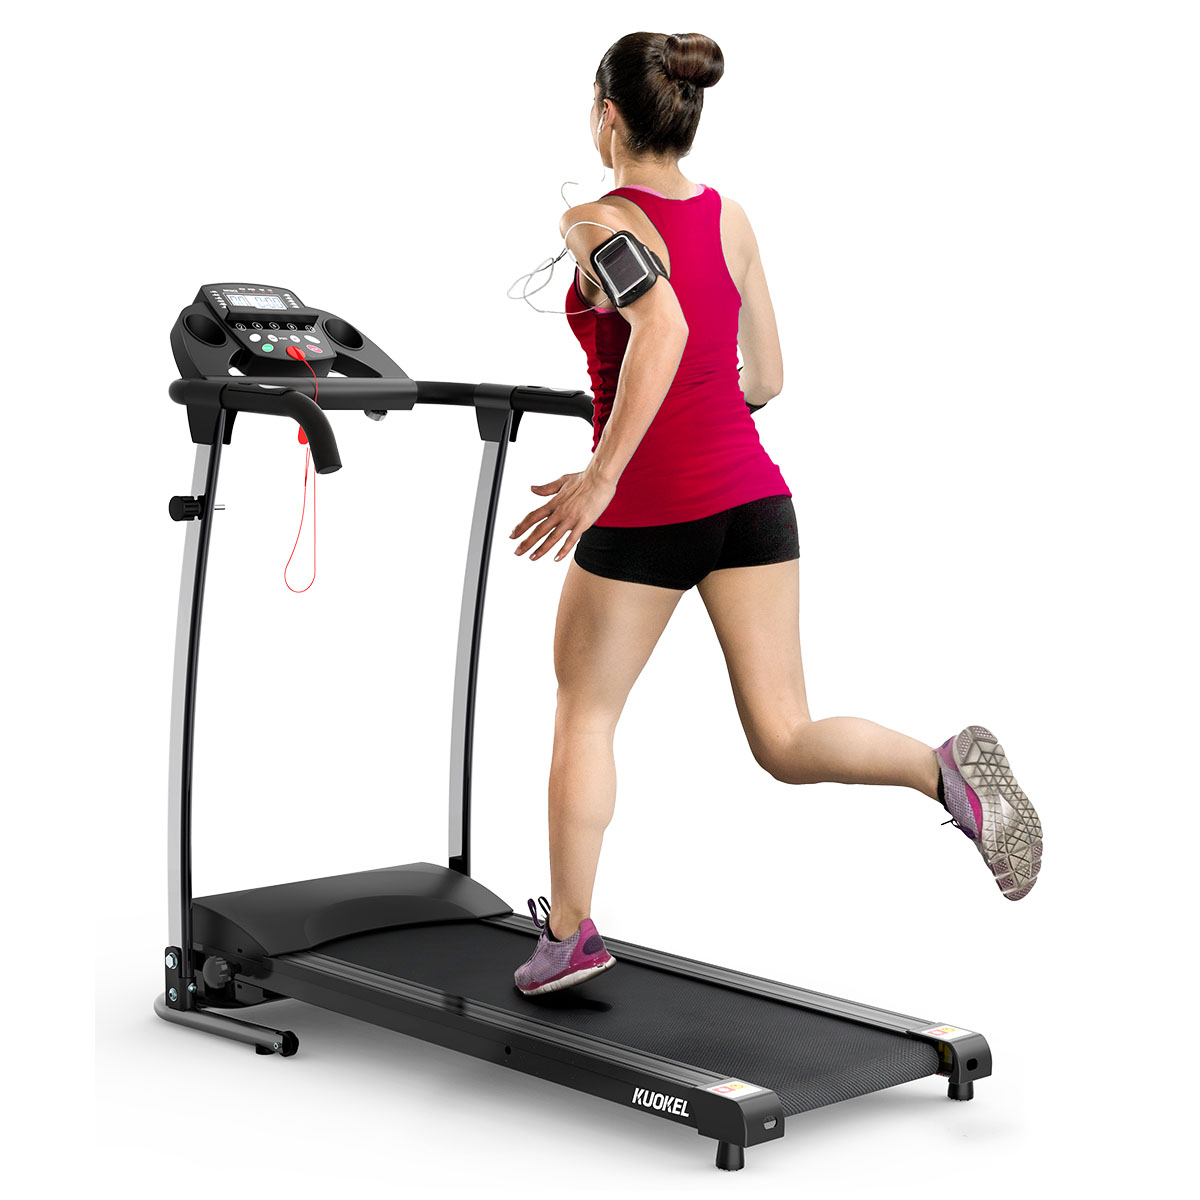 Fitness Machine Apply To Indoor Weight Loss Foldable Slimming Abdomen Safe no bland Rowing Machine For Home Use Foldable